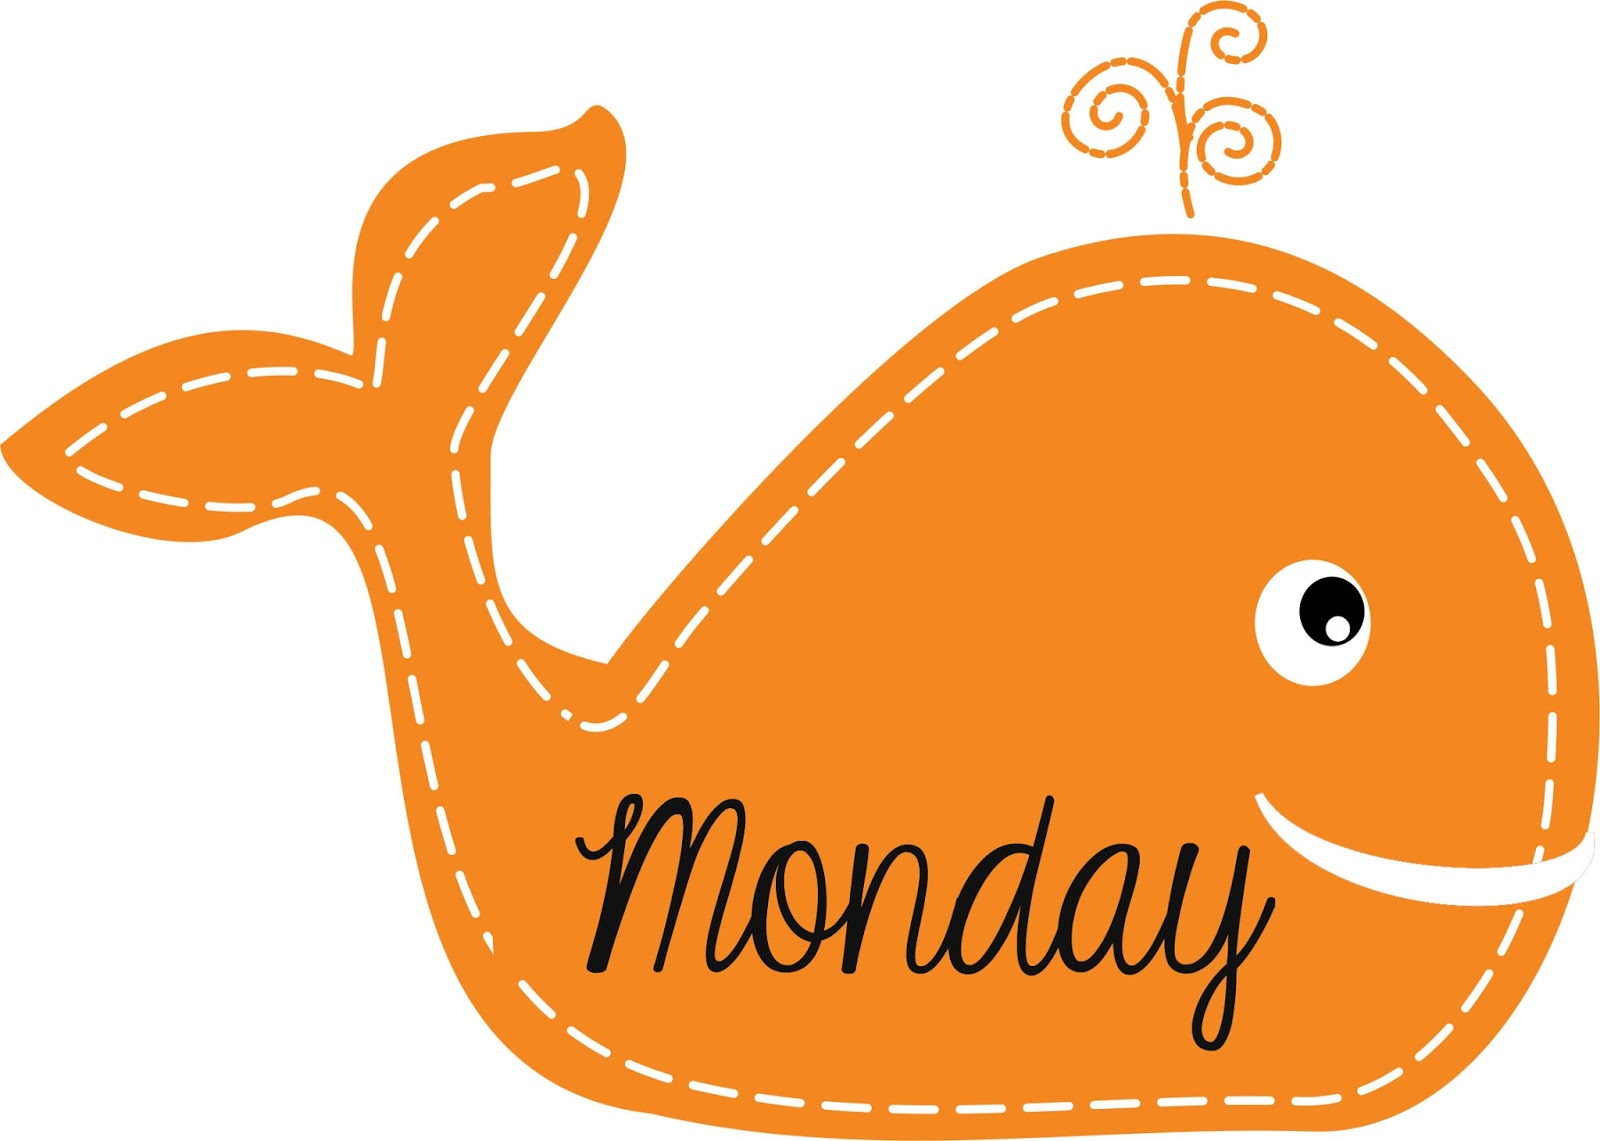 monday clipart clipart suggest Funny Grilled Cheese grilled cheese clip art burned